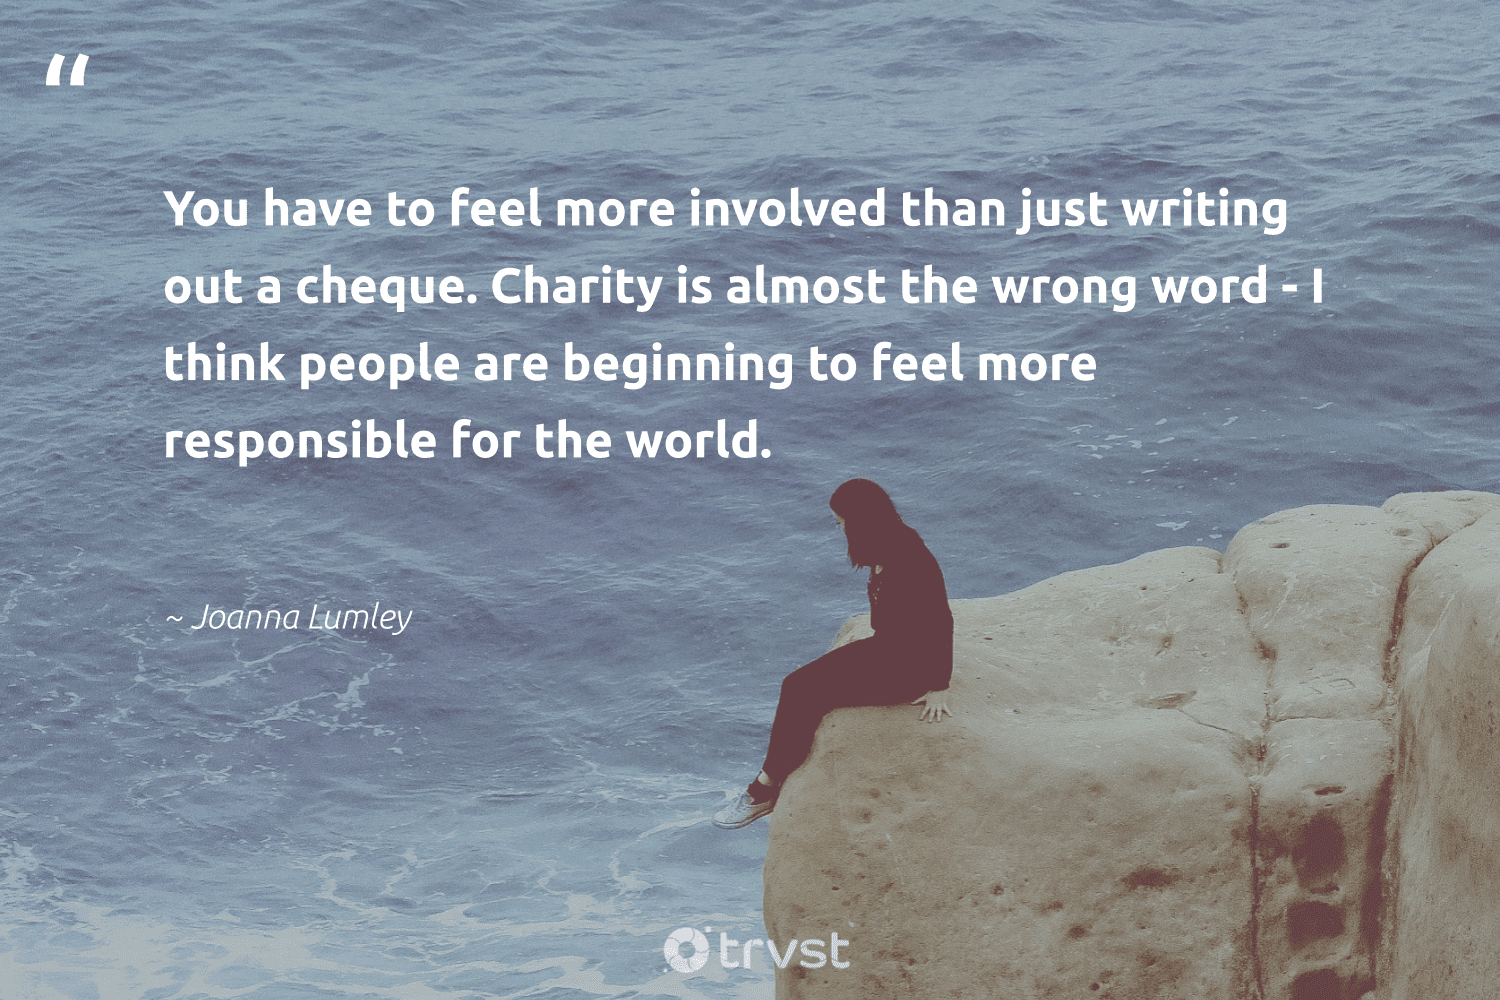 """""""You have to feel more involved than just writing out a cheque. Charity is almost the wrong word - I think people are beginning to feel more responsible for the world.""""  - Joanna Lumley #trvst #quotes #bethechange #takeaction #weareallone #gogreen #society #collectiveaction #dogood #socialchange #strongercommunities #changetheworld"""